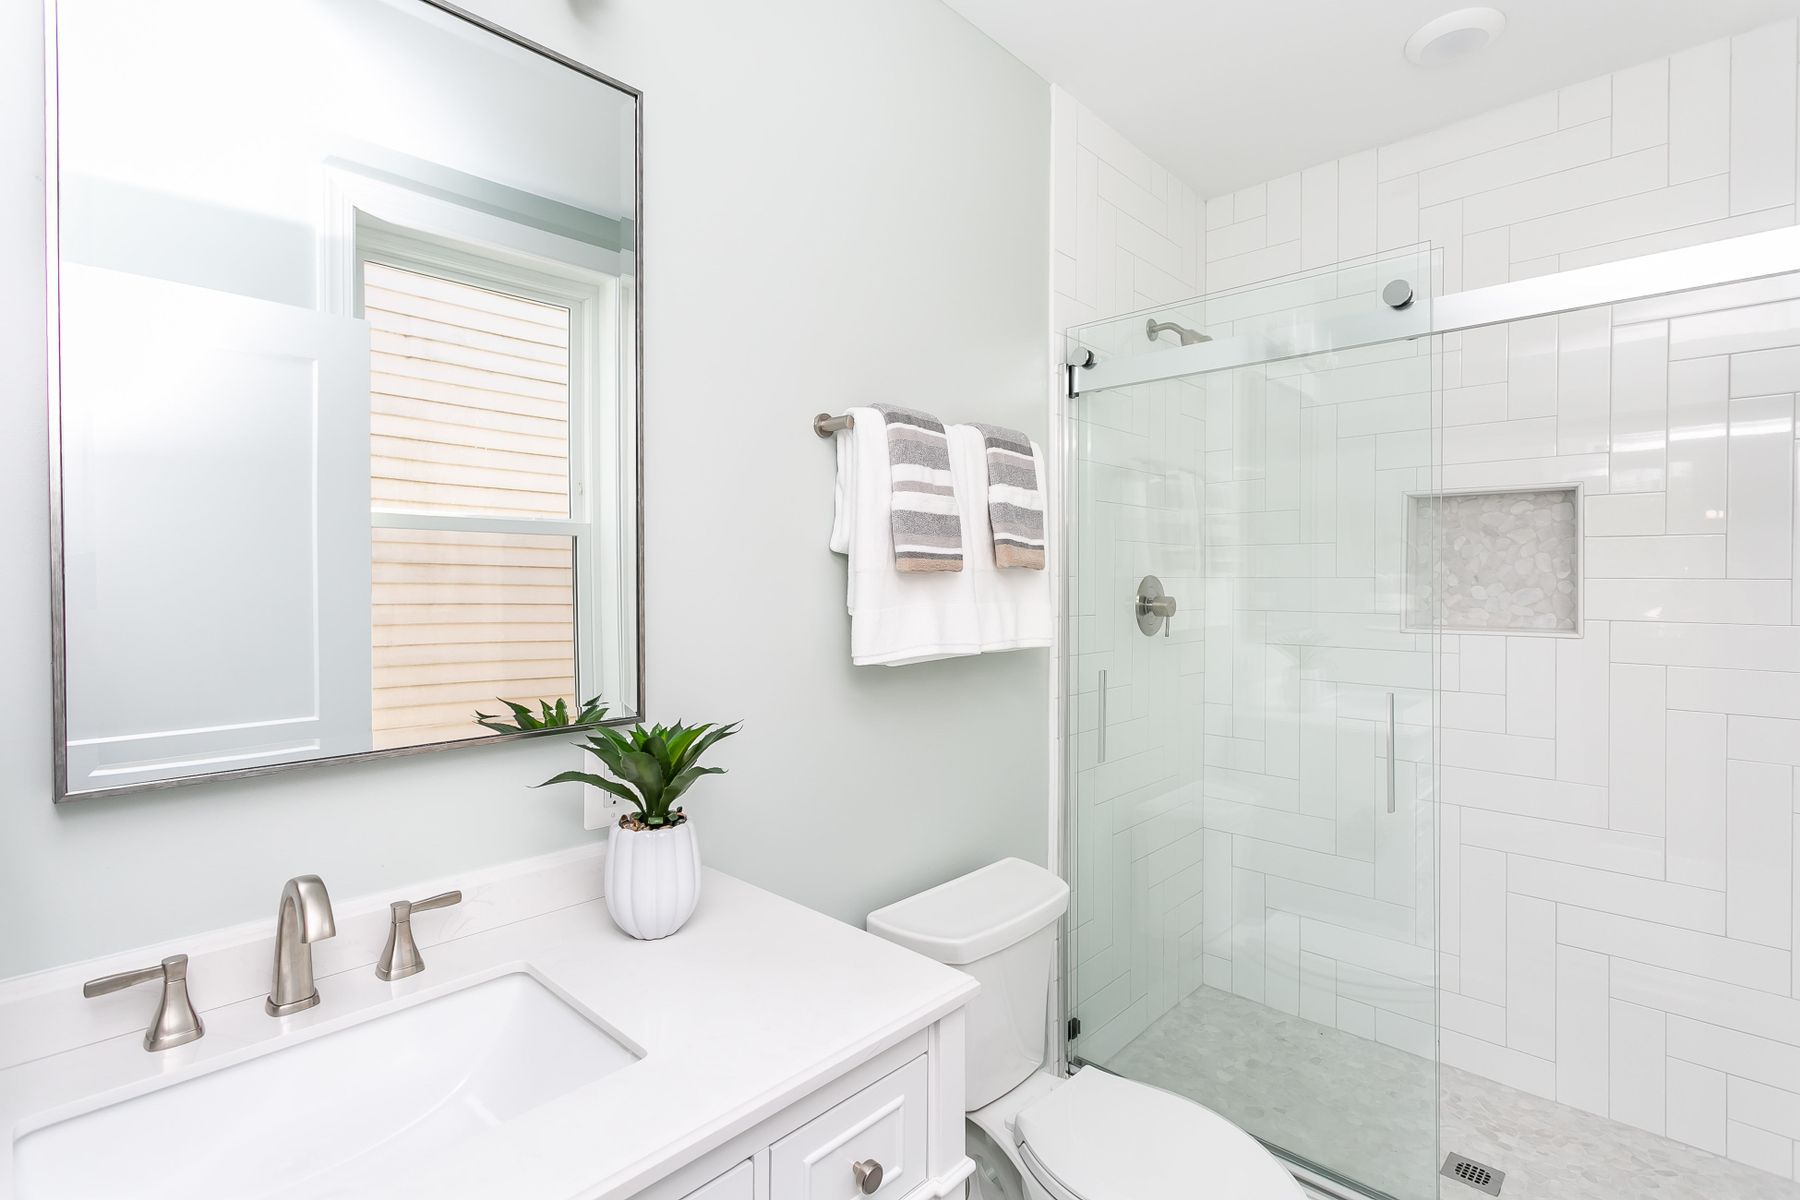 Large bathroom with expert tile work